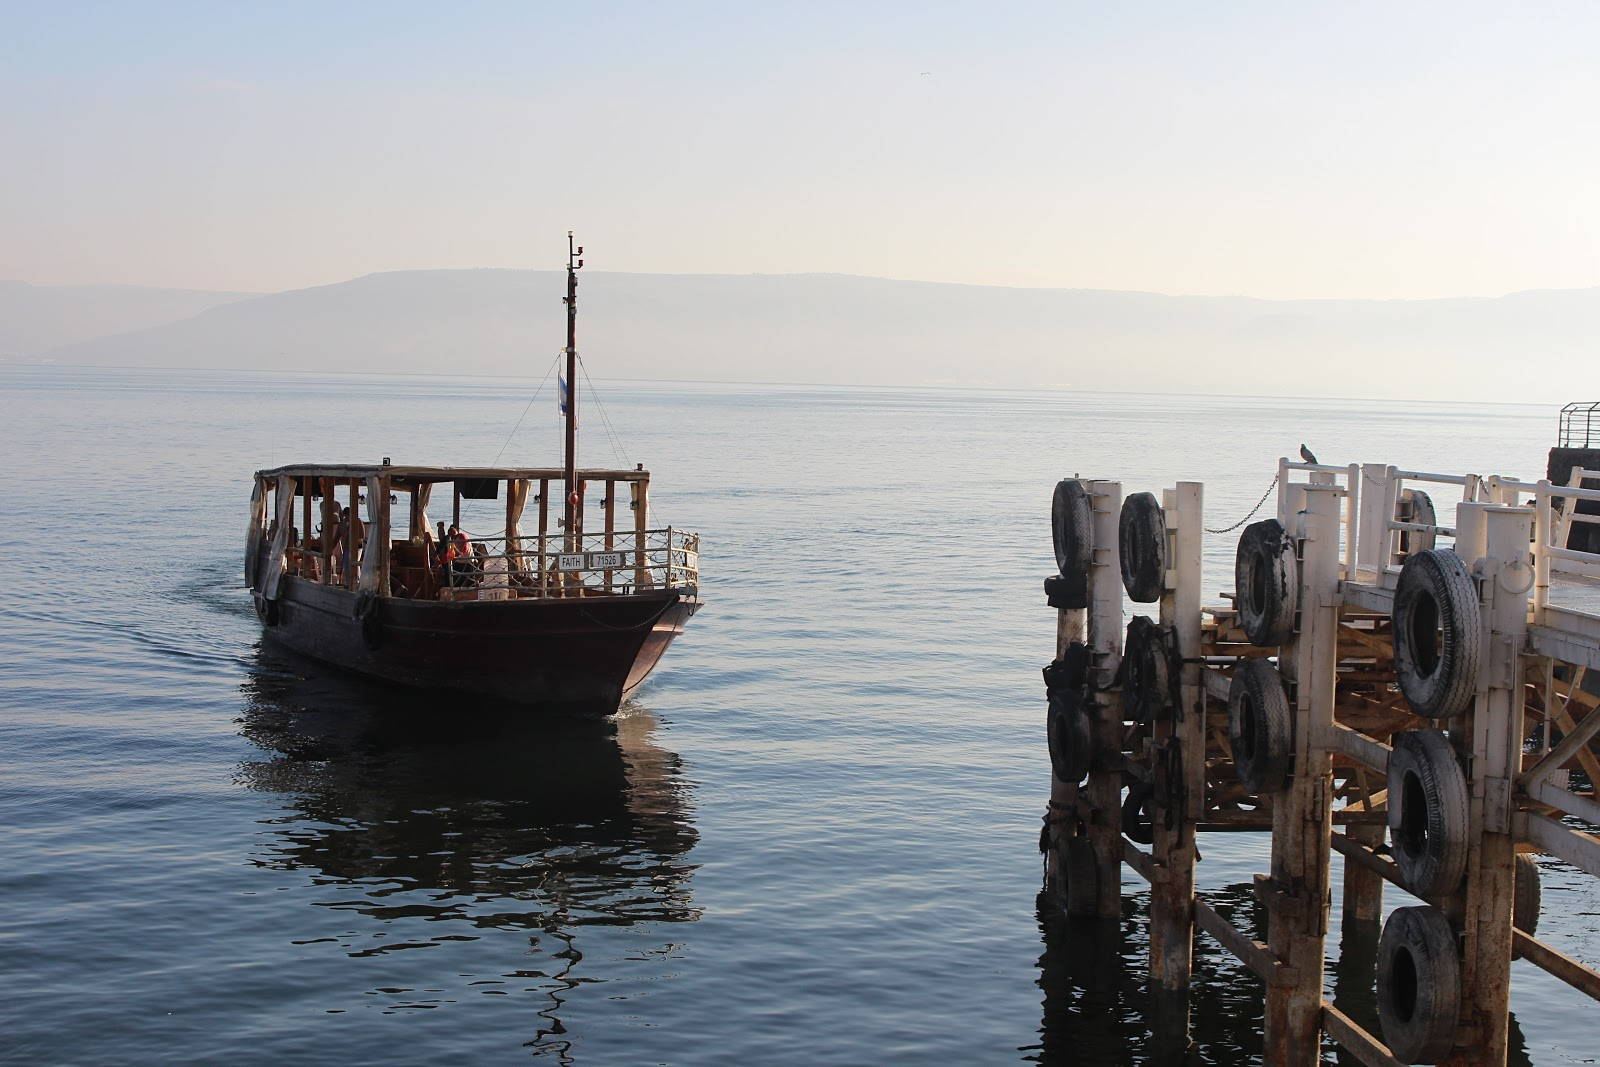 Sea of Galilee: Things To Do in Israel